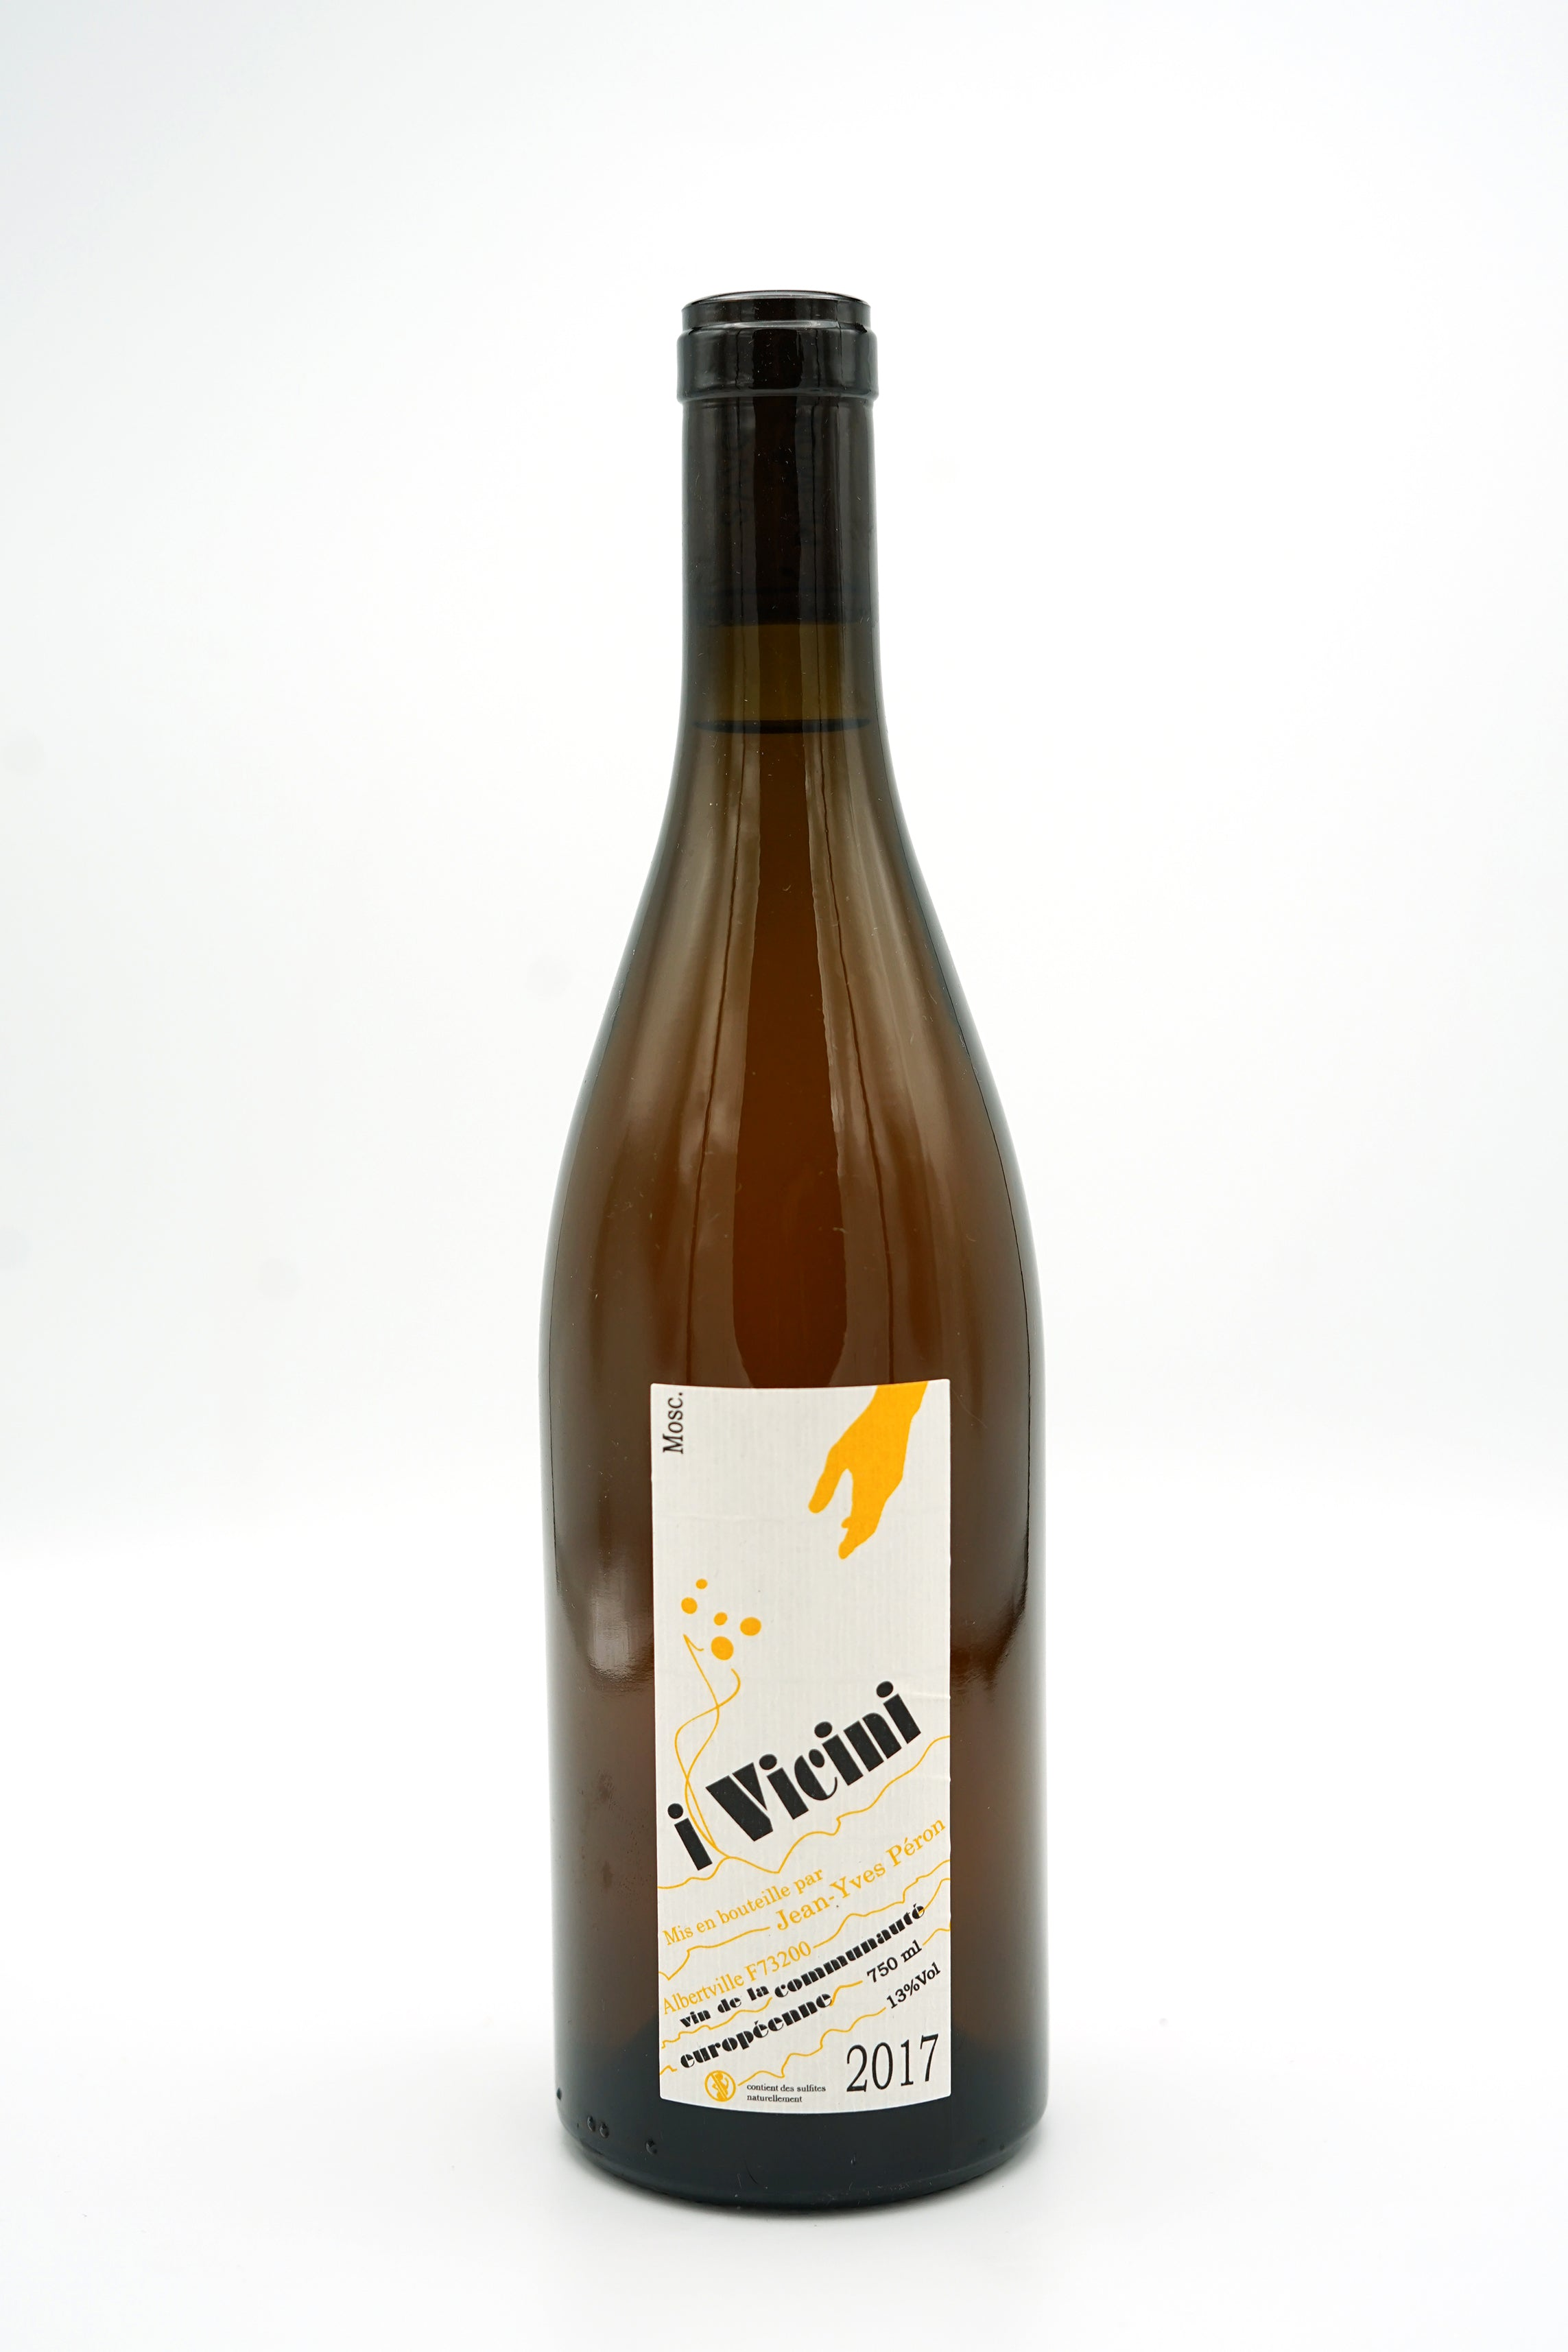 I Vicini Moscato 2017 - Jean-Yves Péron - SOLD OUT.